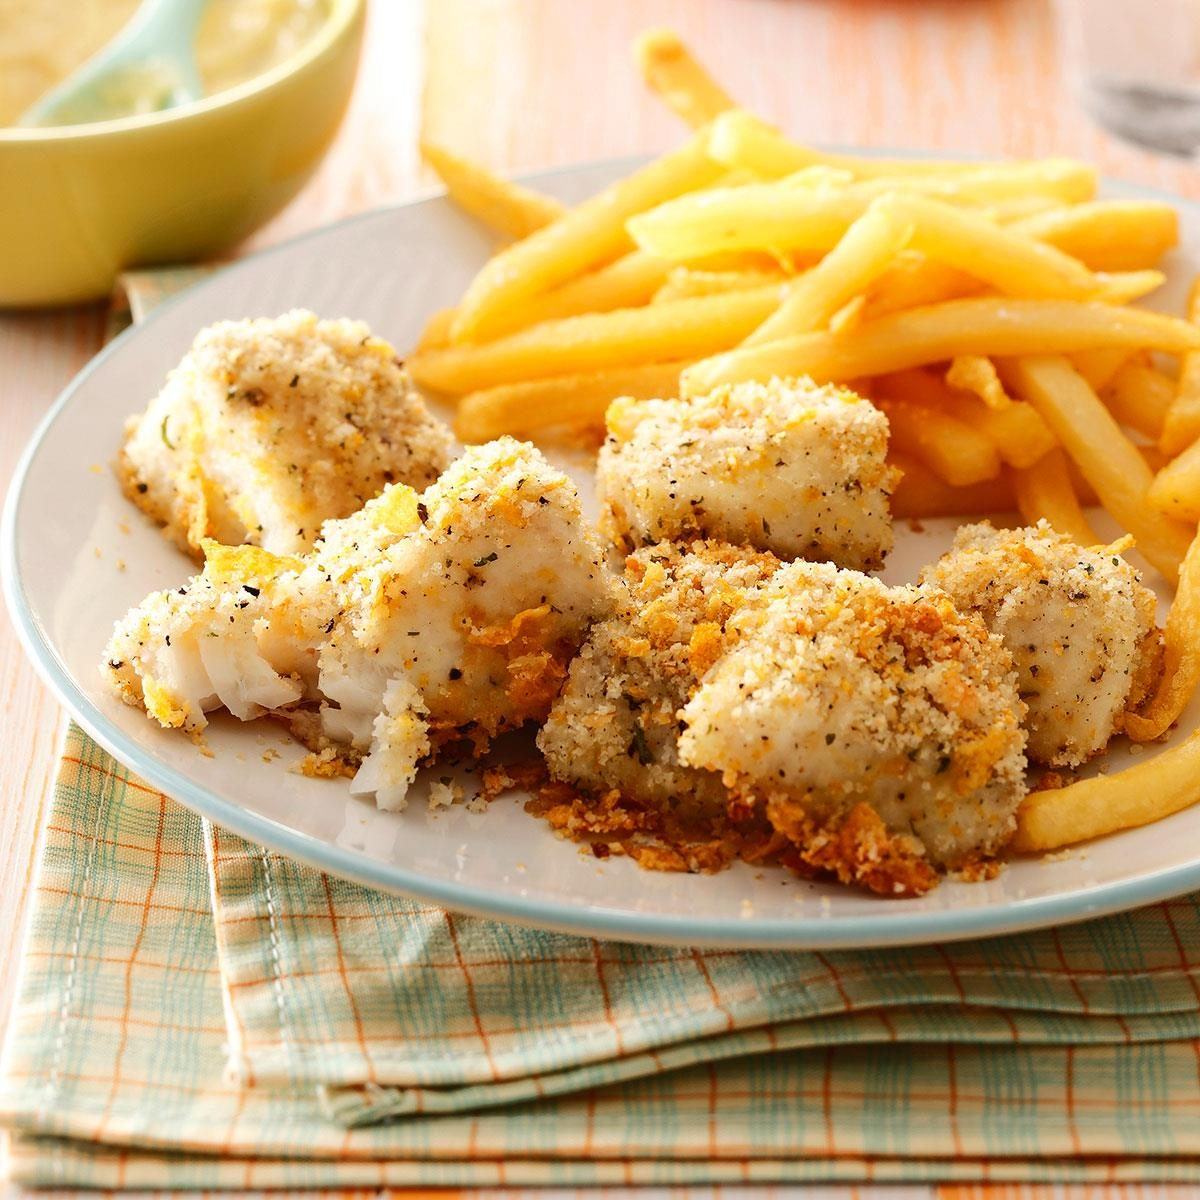 Oven-Fried Fish Nuggets